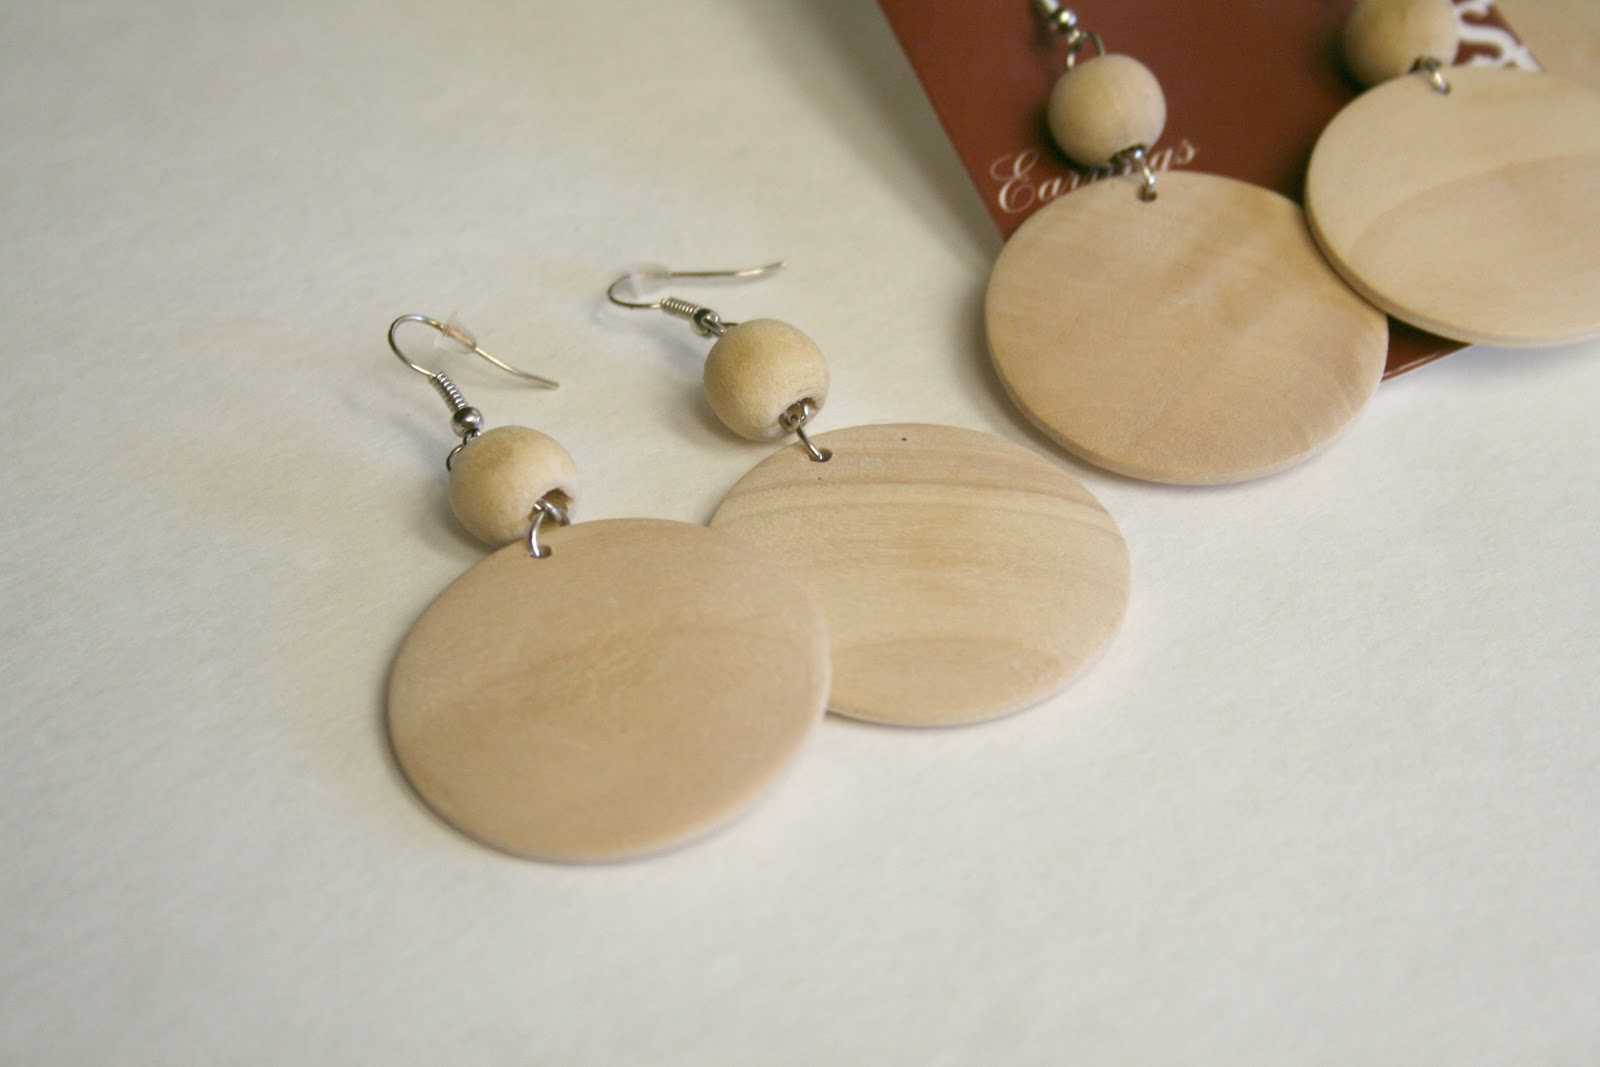 Dollar Craft Neon Wood Painted Earrings Diy Handmade Wooden Earrings